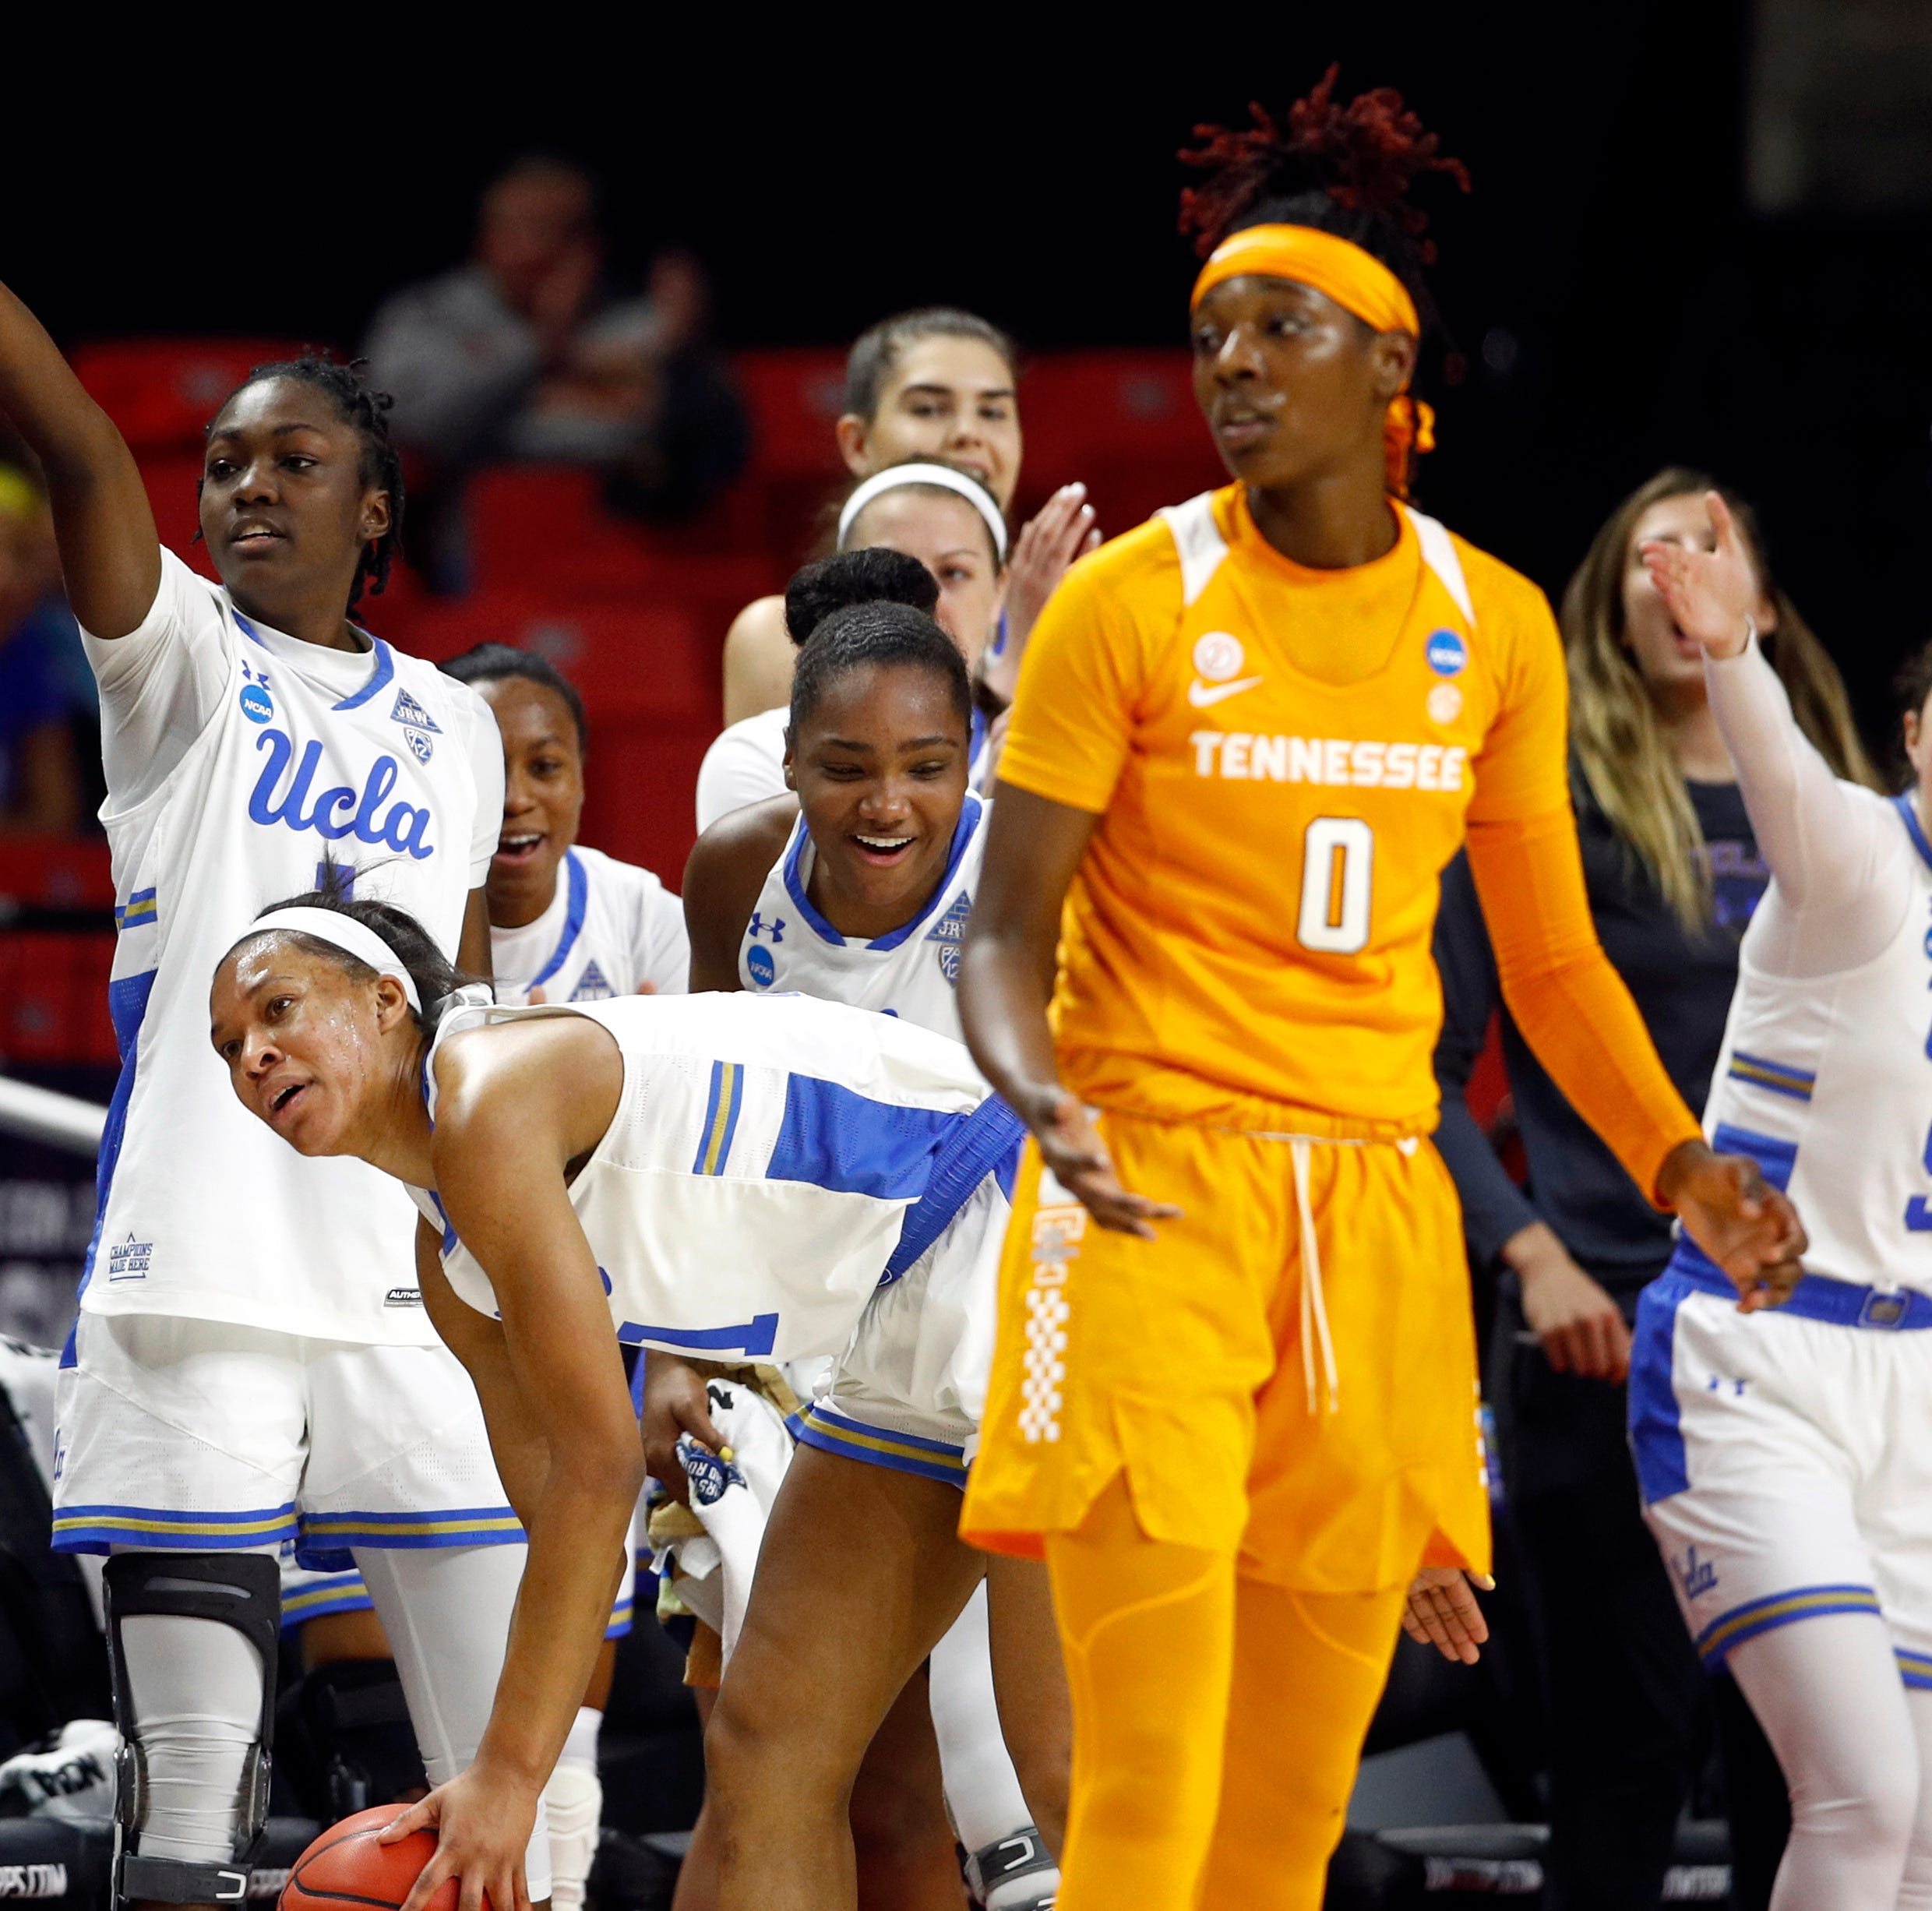 Lady Vols eliminated by UCLA in NCAA Tournament first round